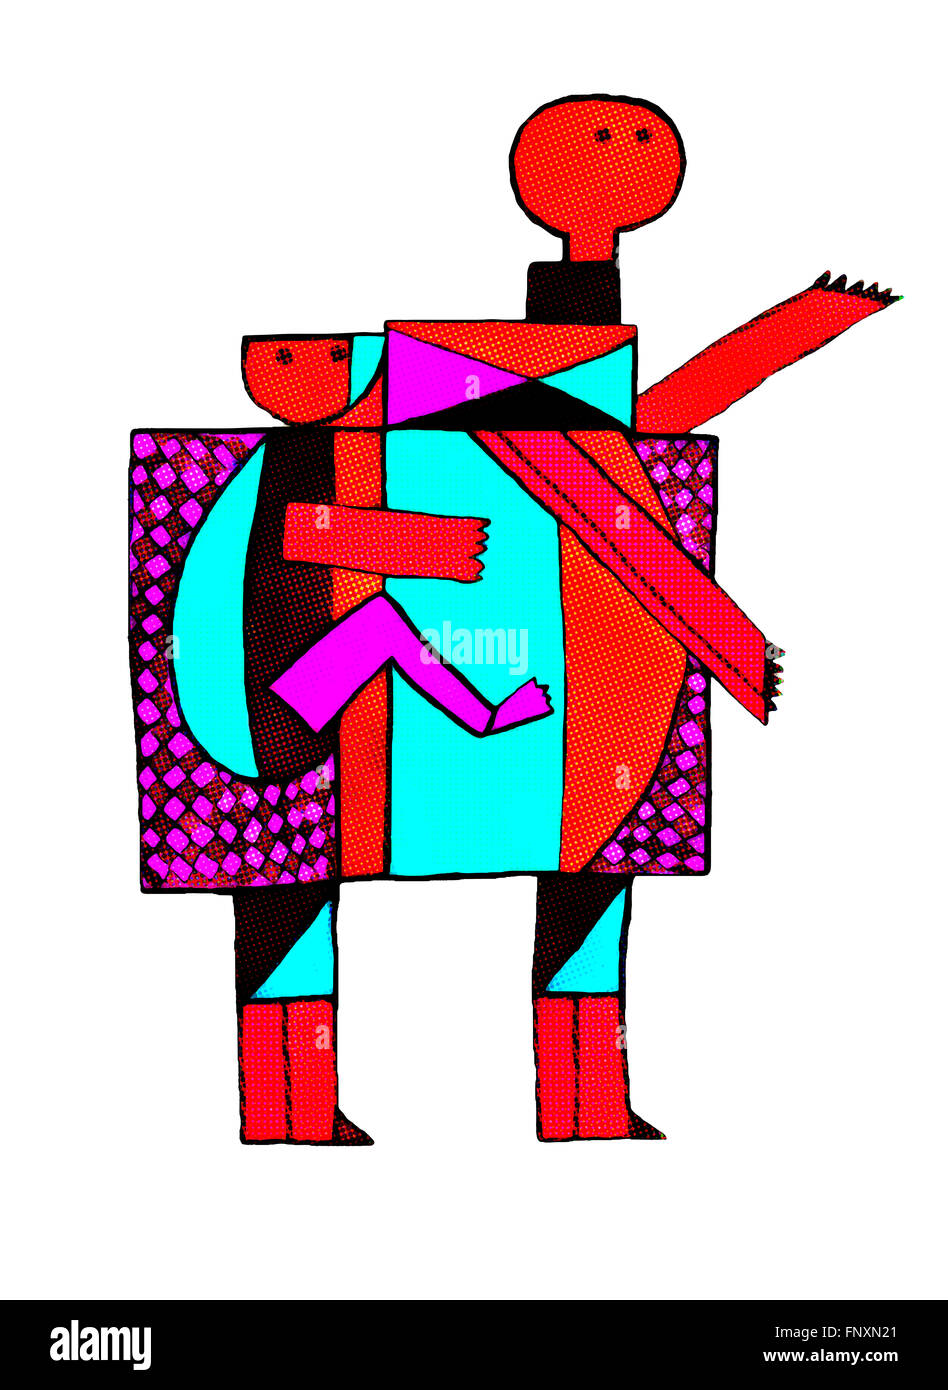 Mother carrying  a child on her back in abstract geometrical illustration, expressing love and devotion. Playful - Stock Image